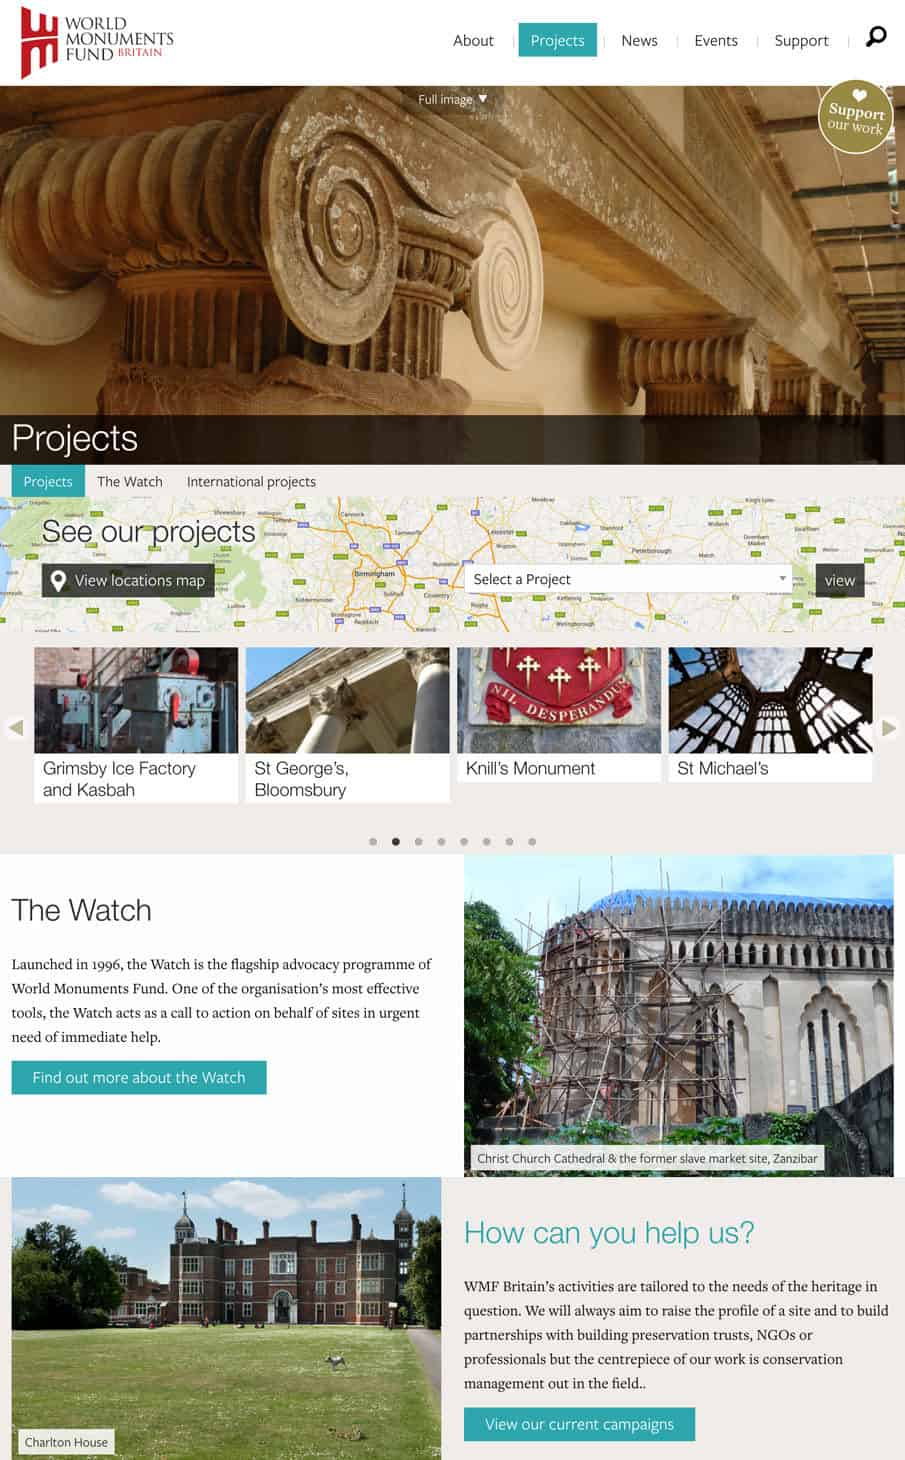 Screenshot of World Monuments Fund website - Projects